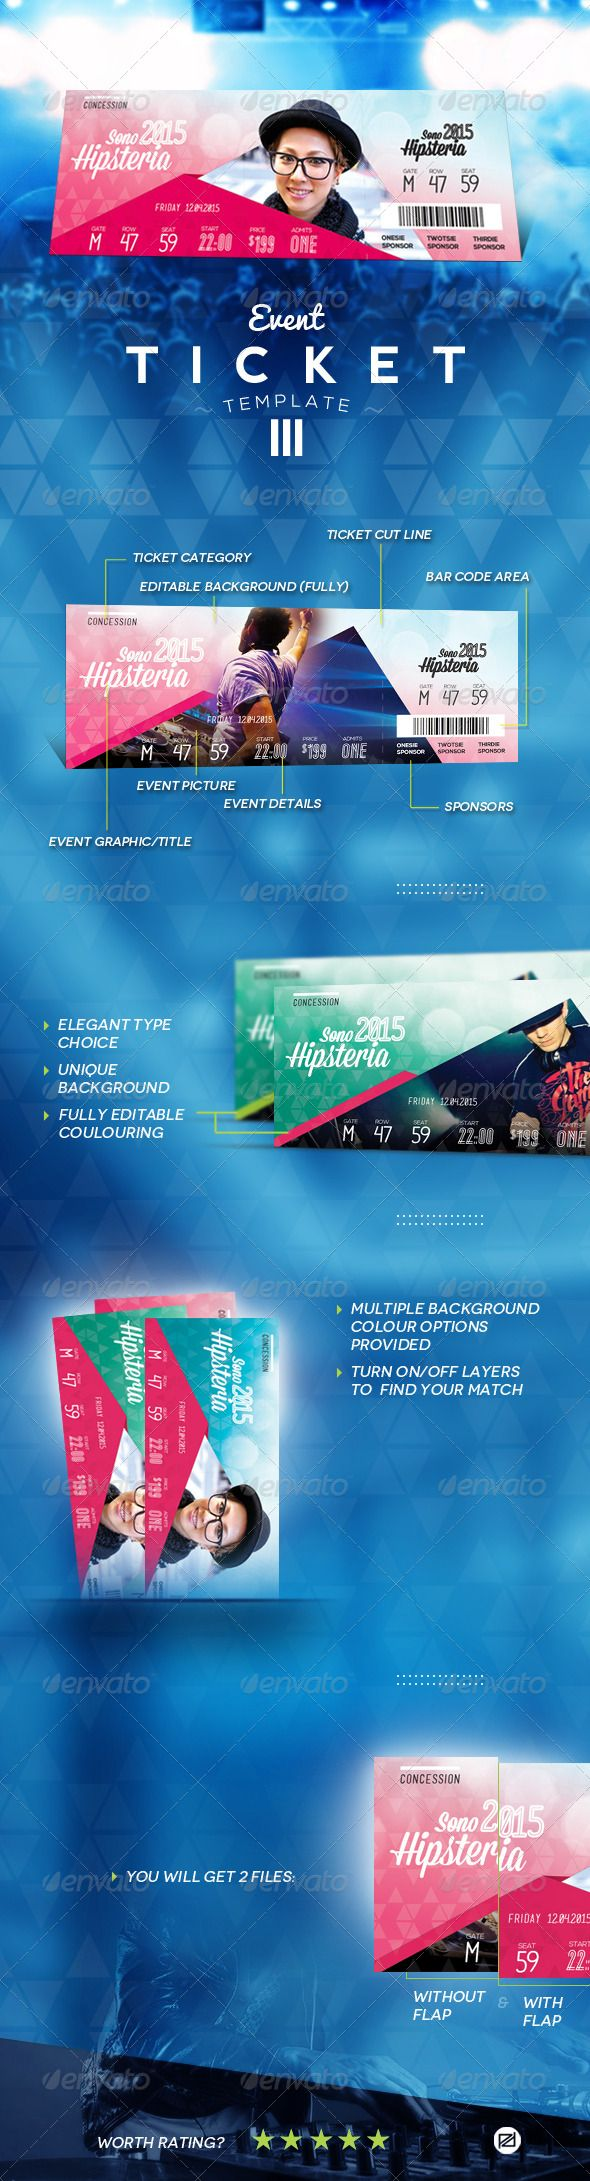 Event Ticket Template PSD. Download here: https://graphicriver.net/item/event-ticket-template-iii/7201437?ref=ksioks